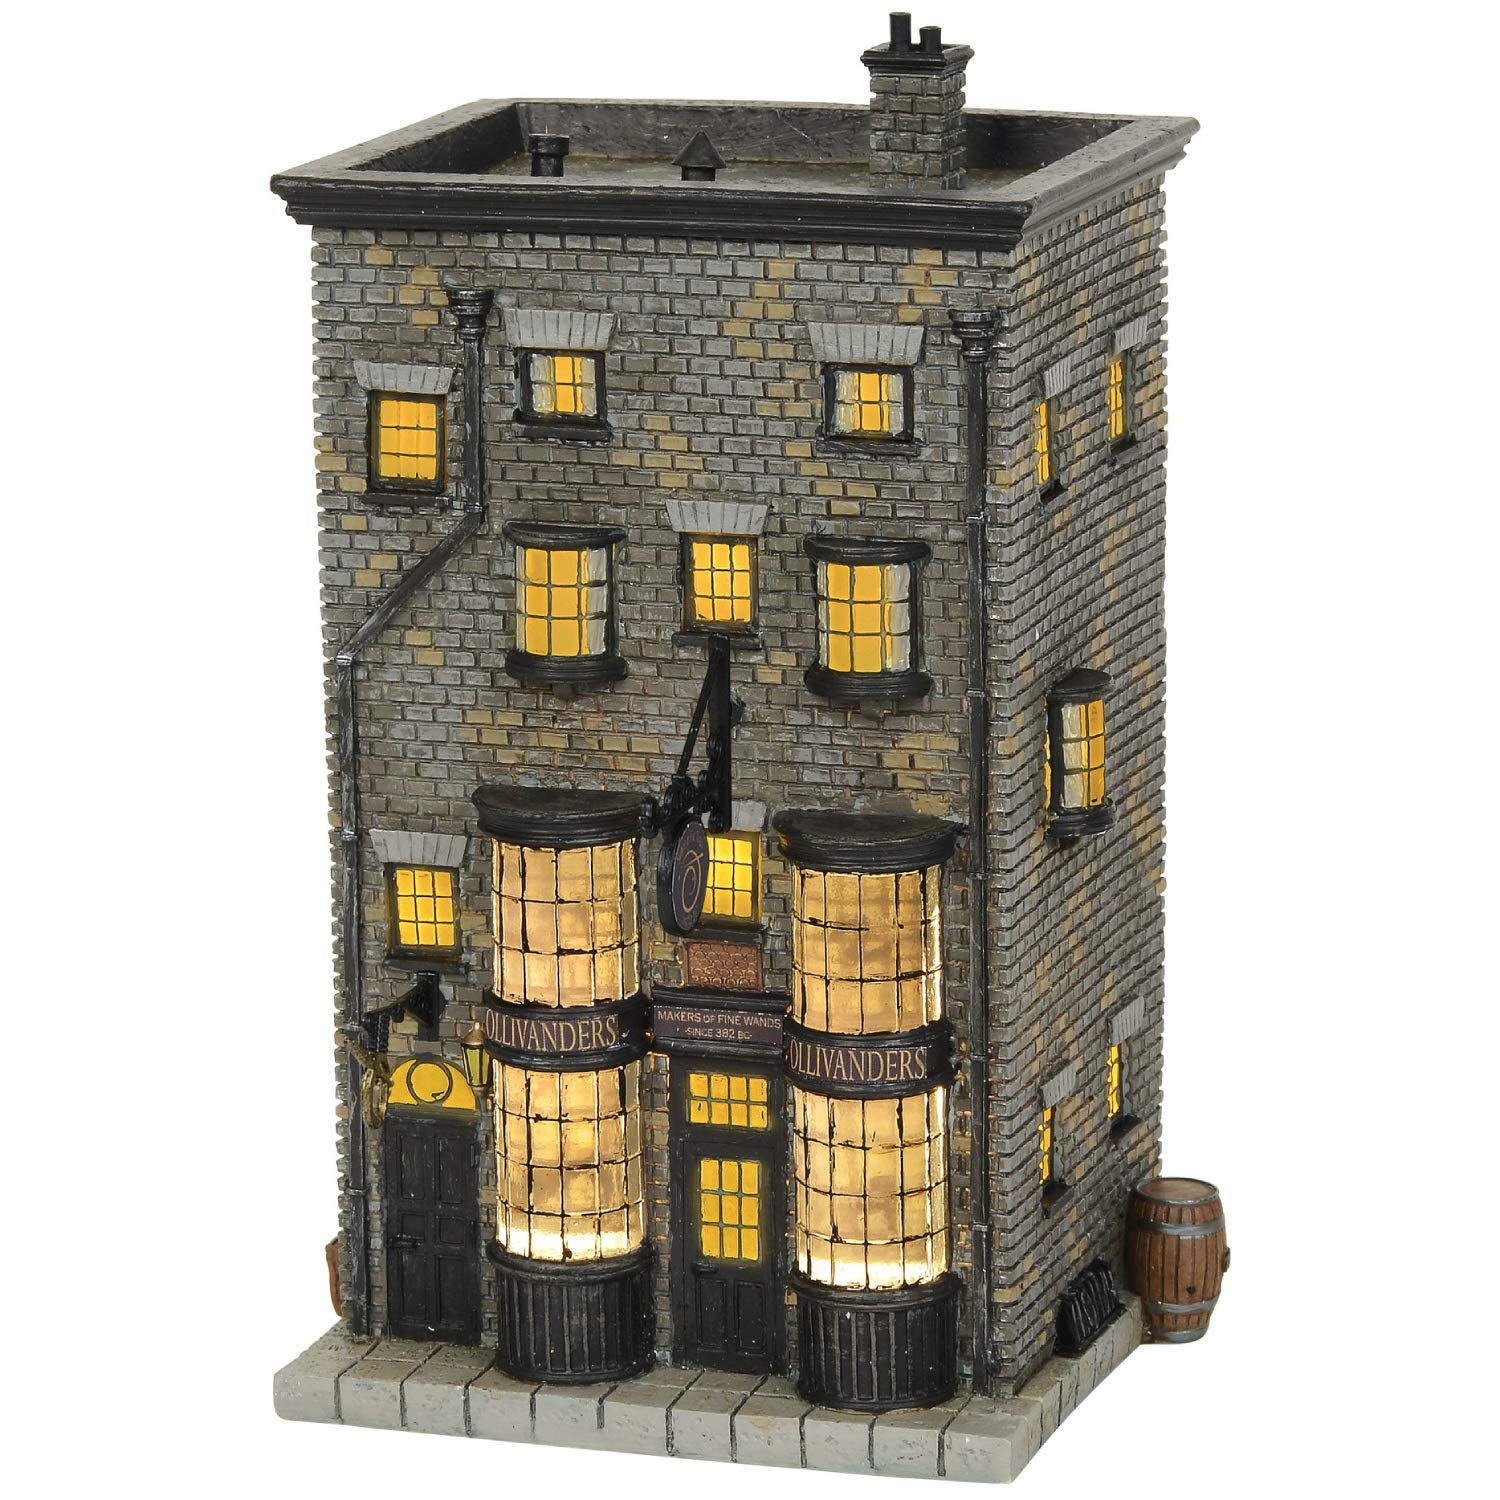 Department56 Harry Potter Village Ollivanders Wand Shop Lit Building, 7.88'', Multicolor by Department56